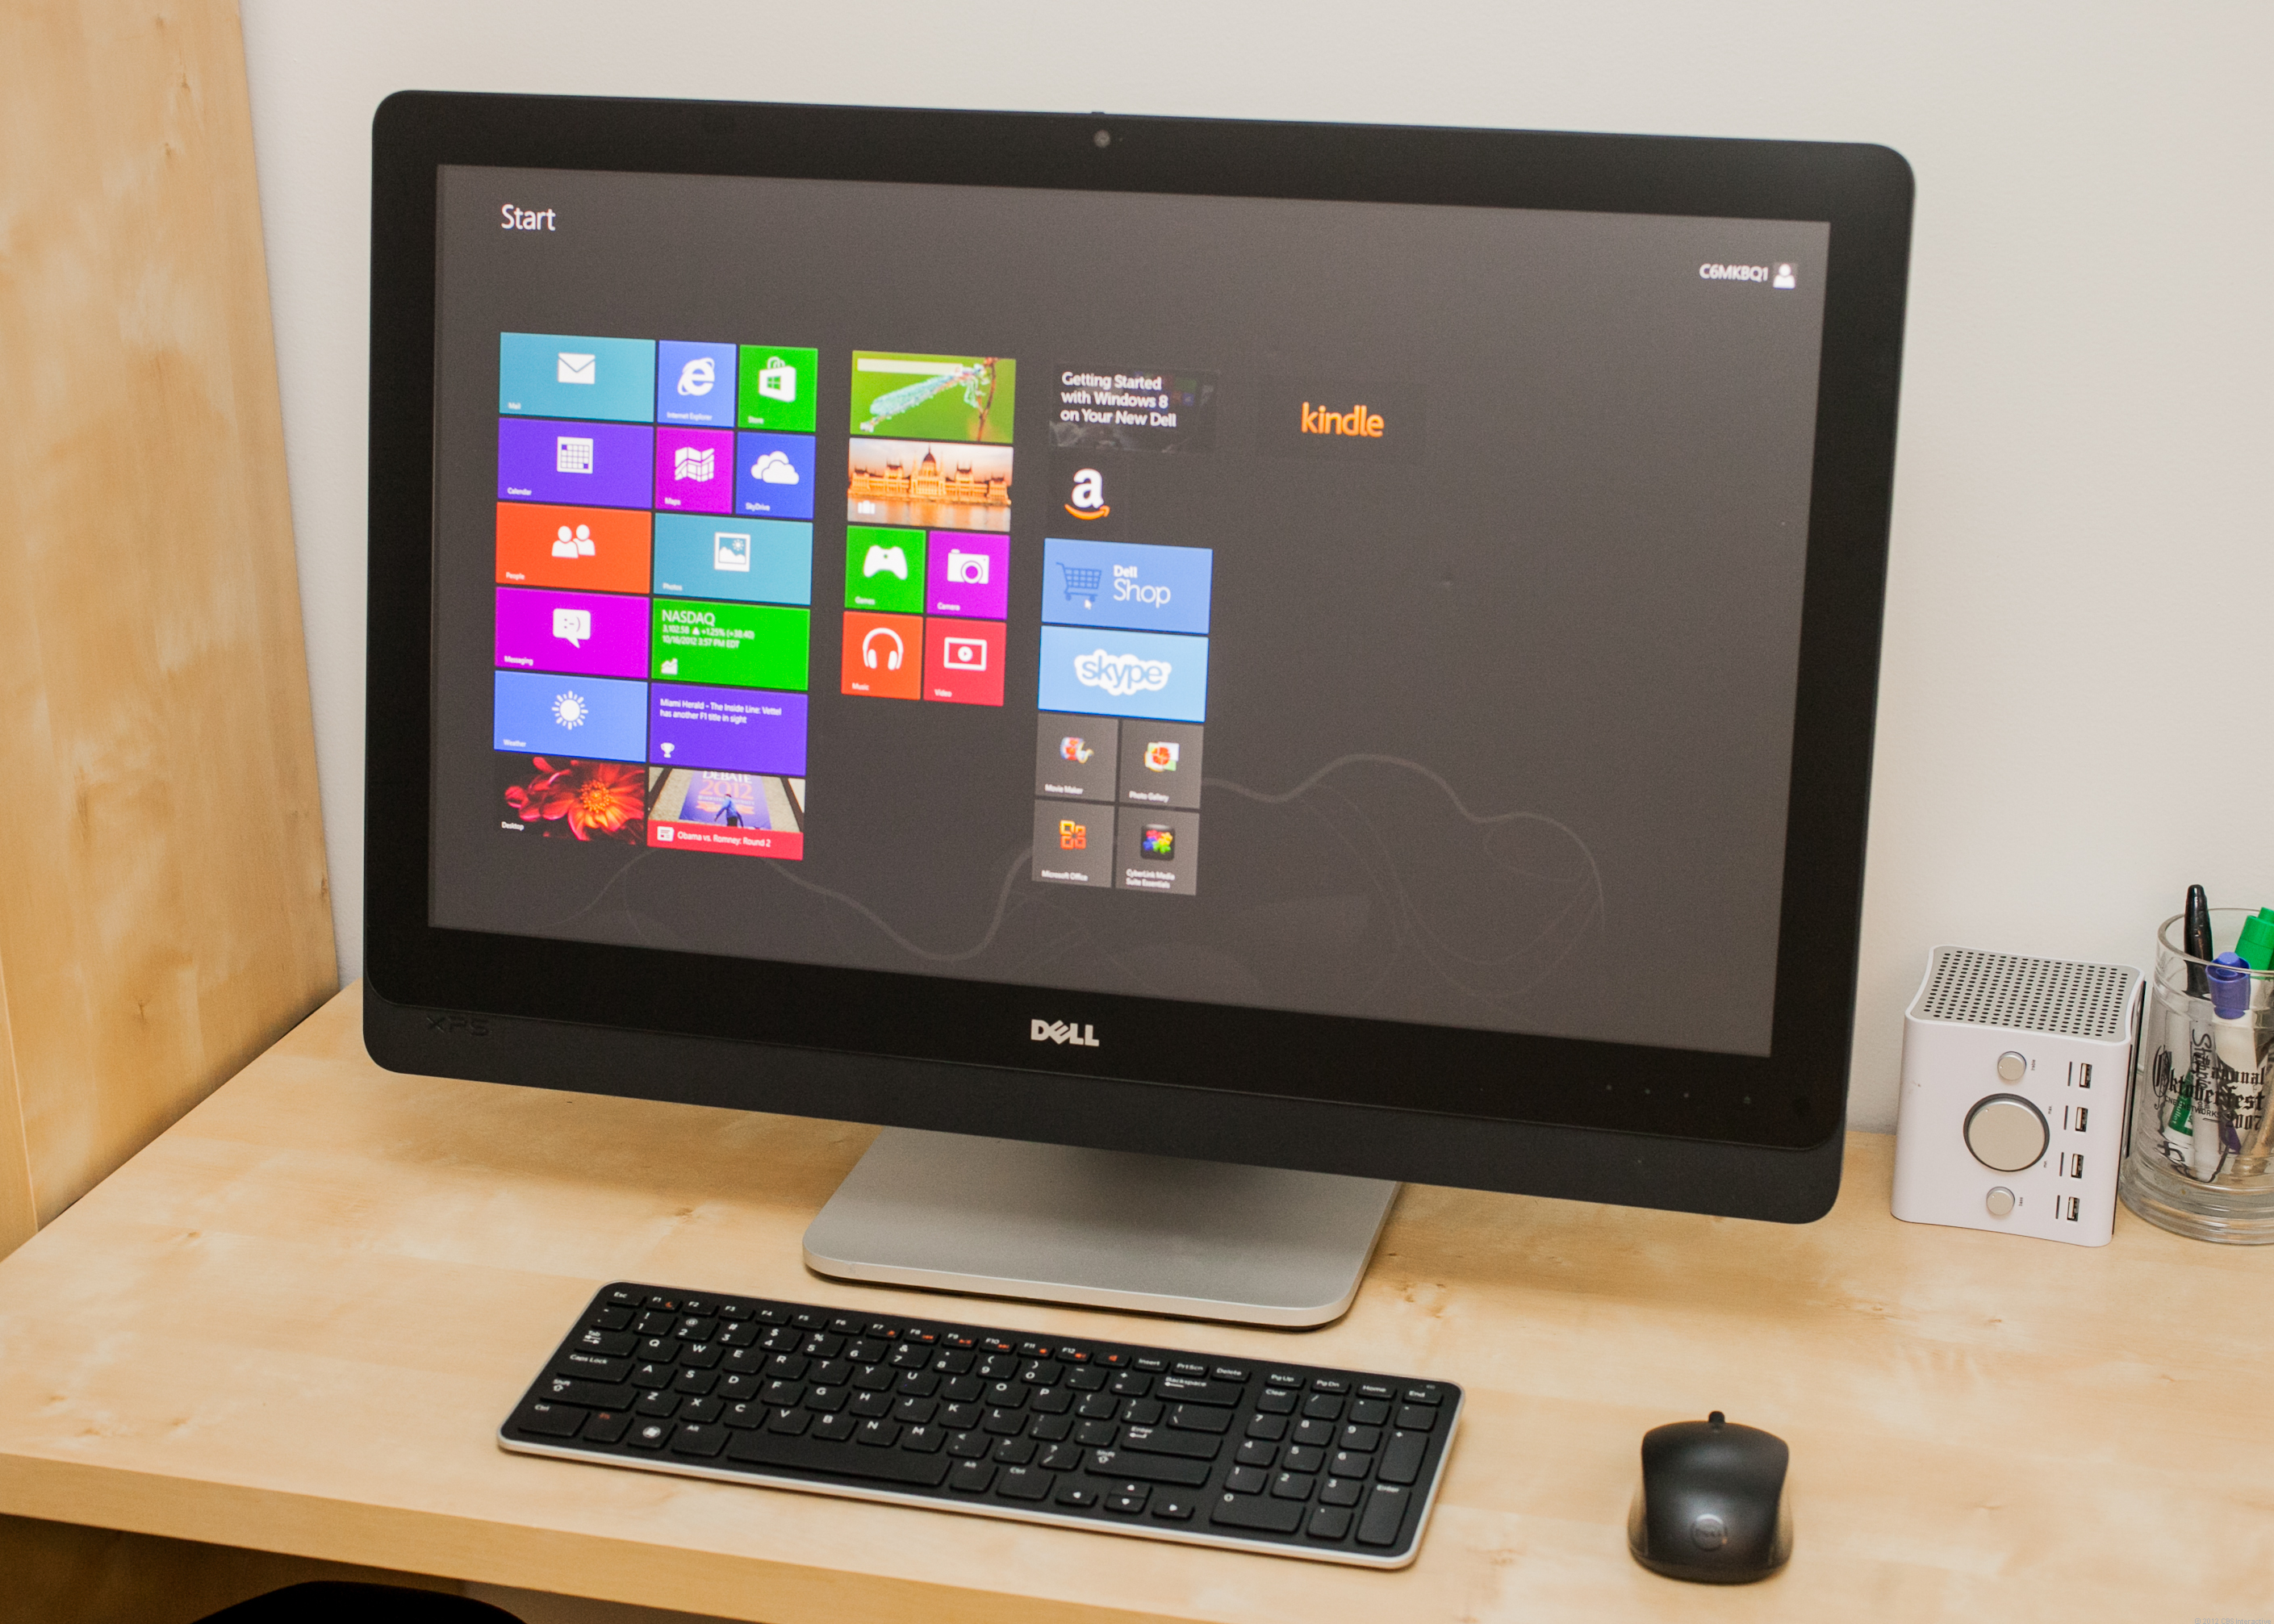 Video: Primer vistazo: Dell XPS One 27